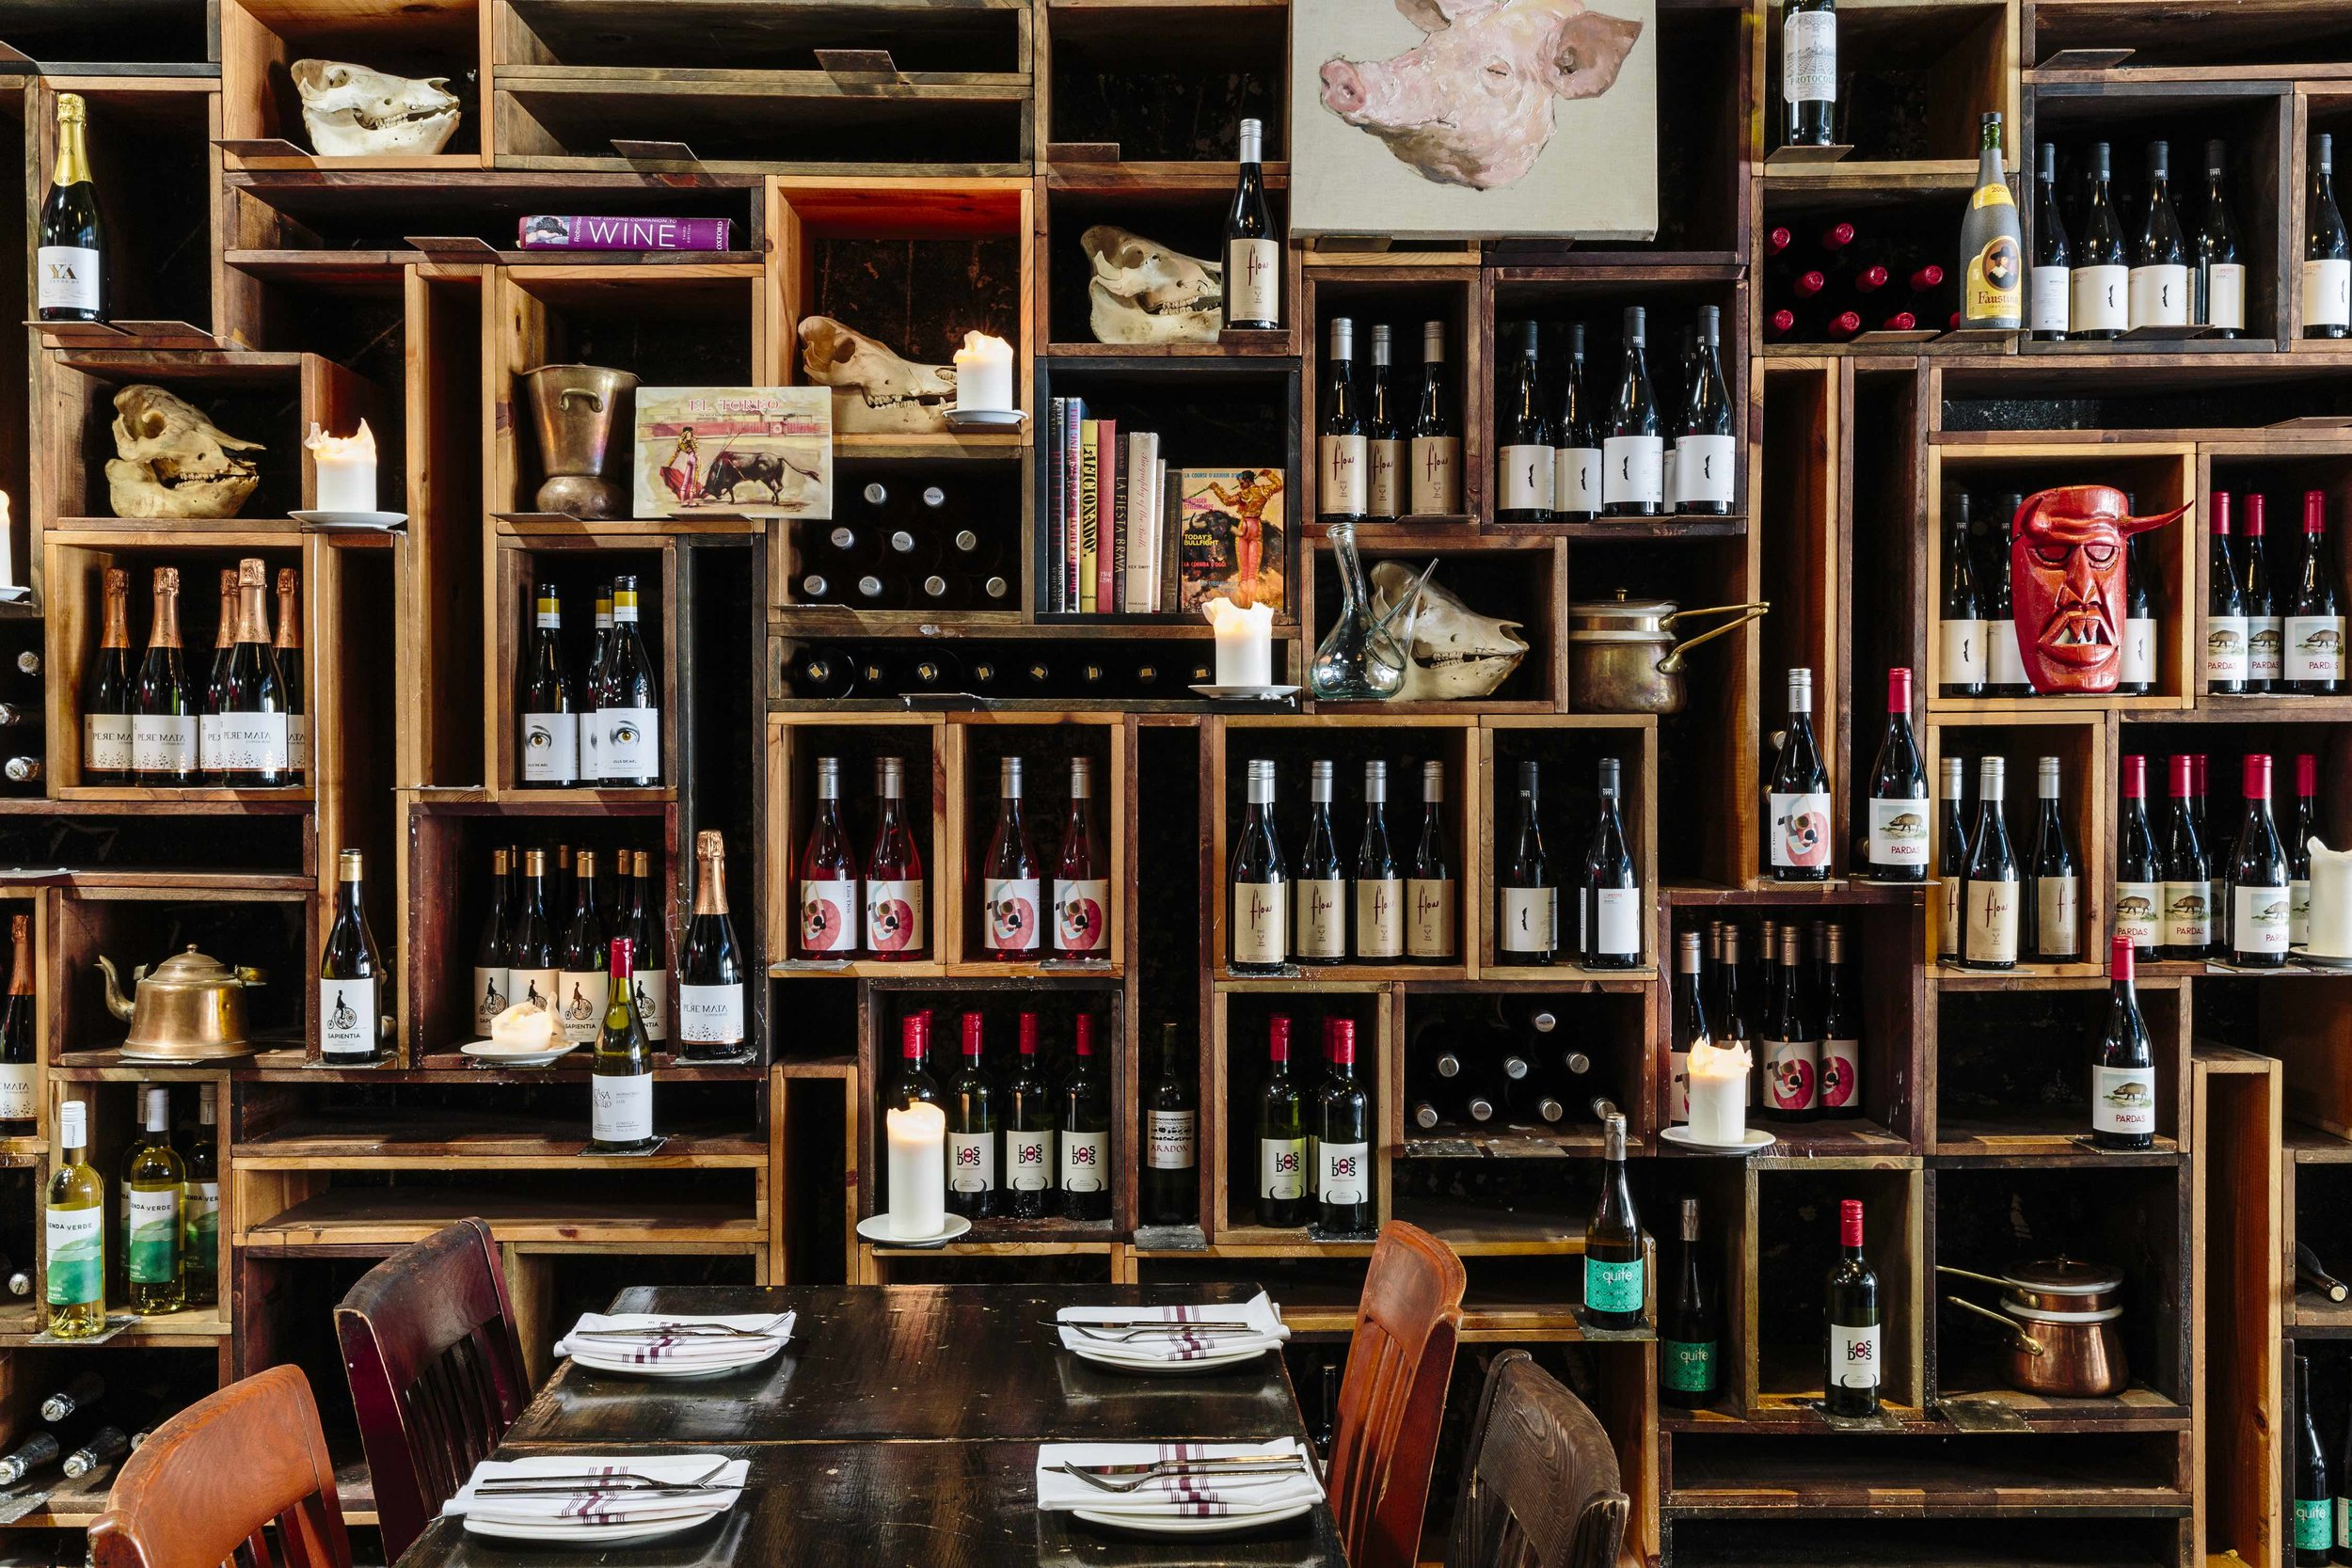 Duende interior with wall of wine bottles